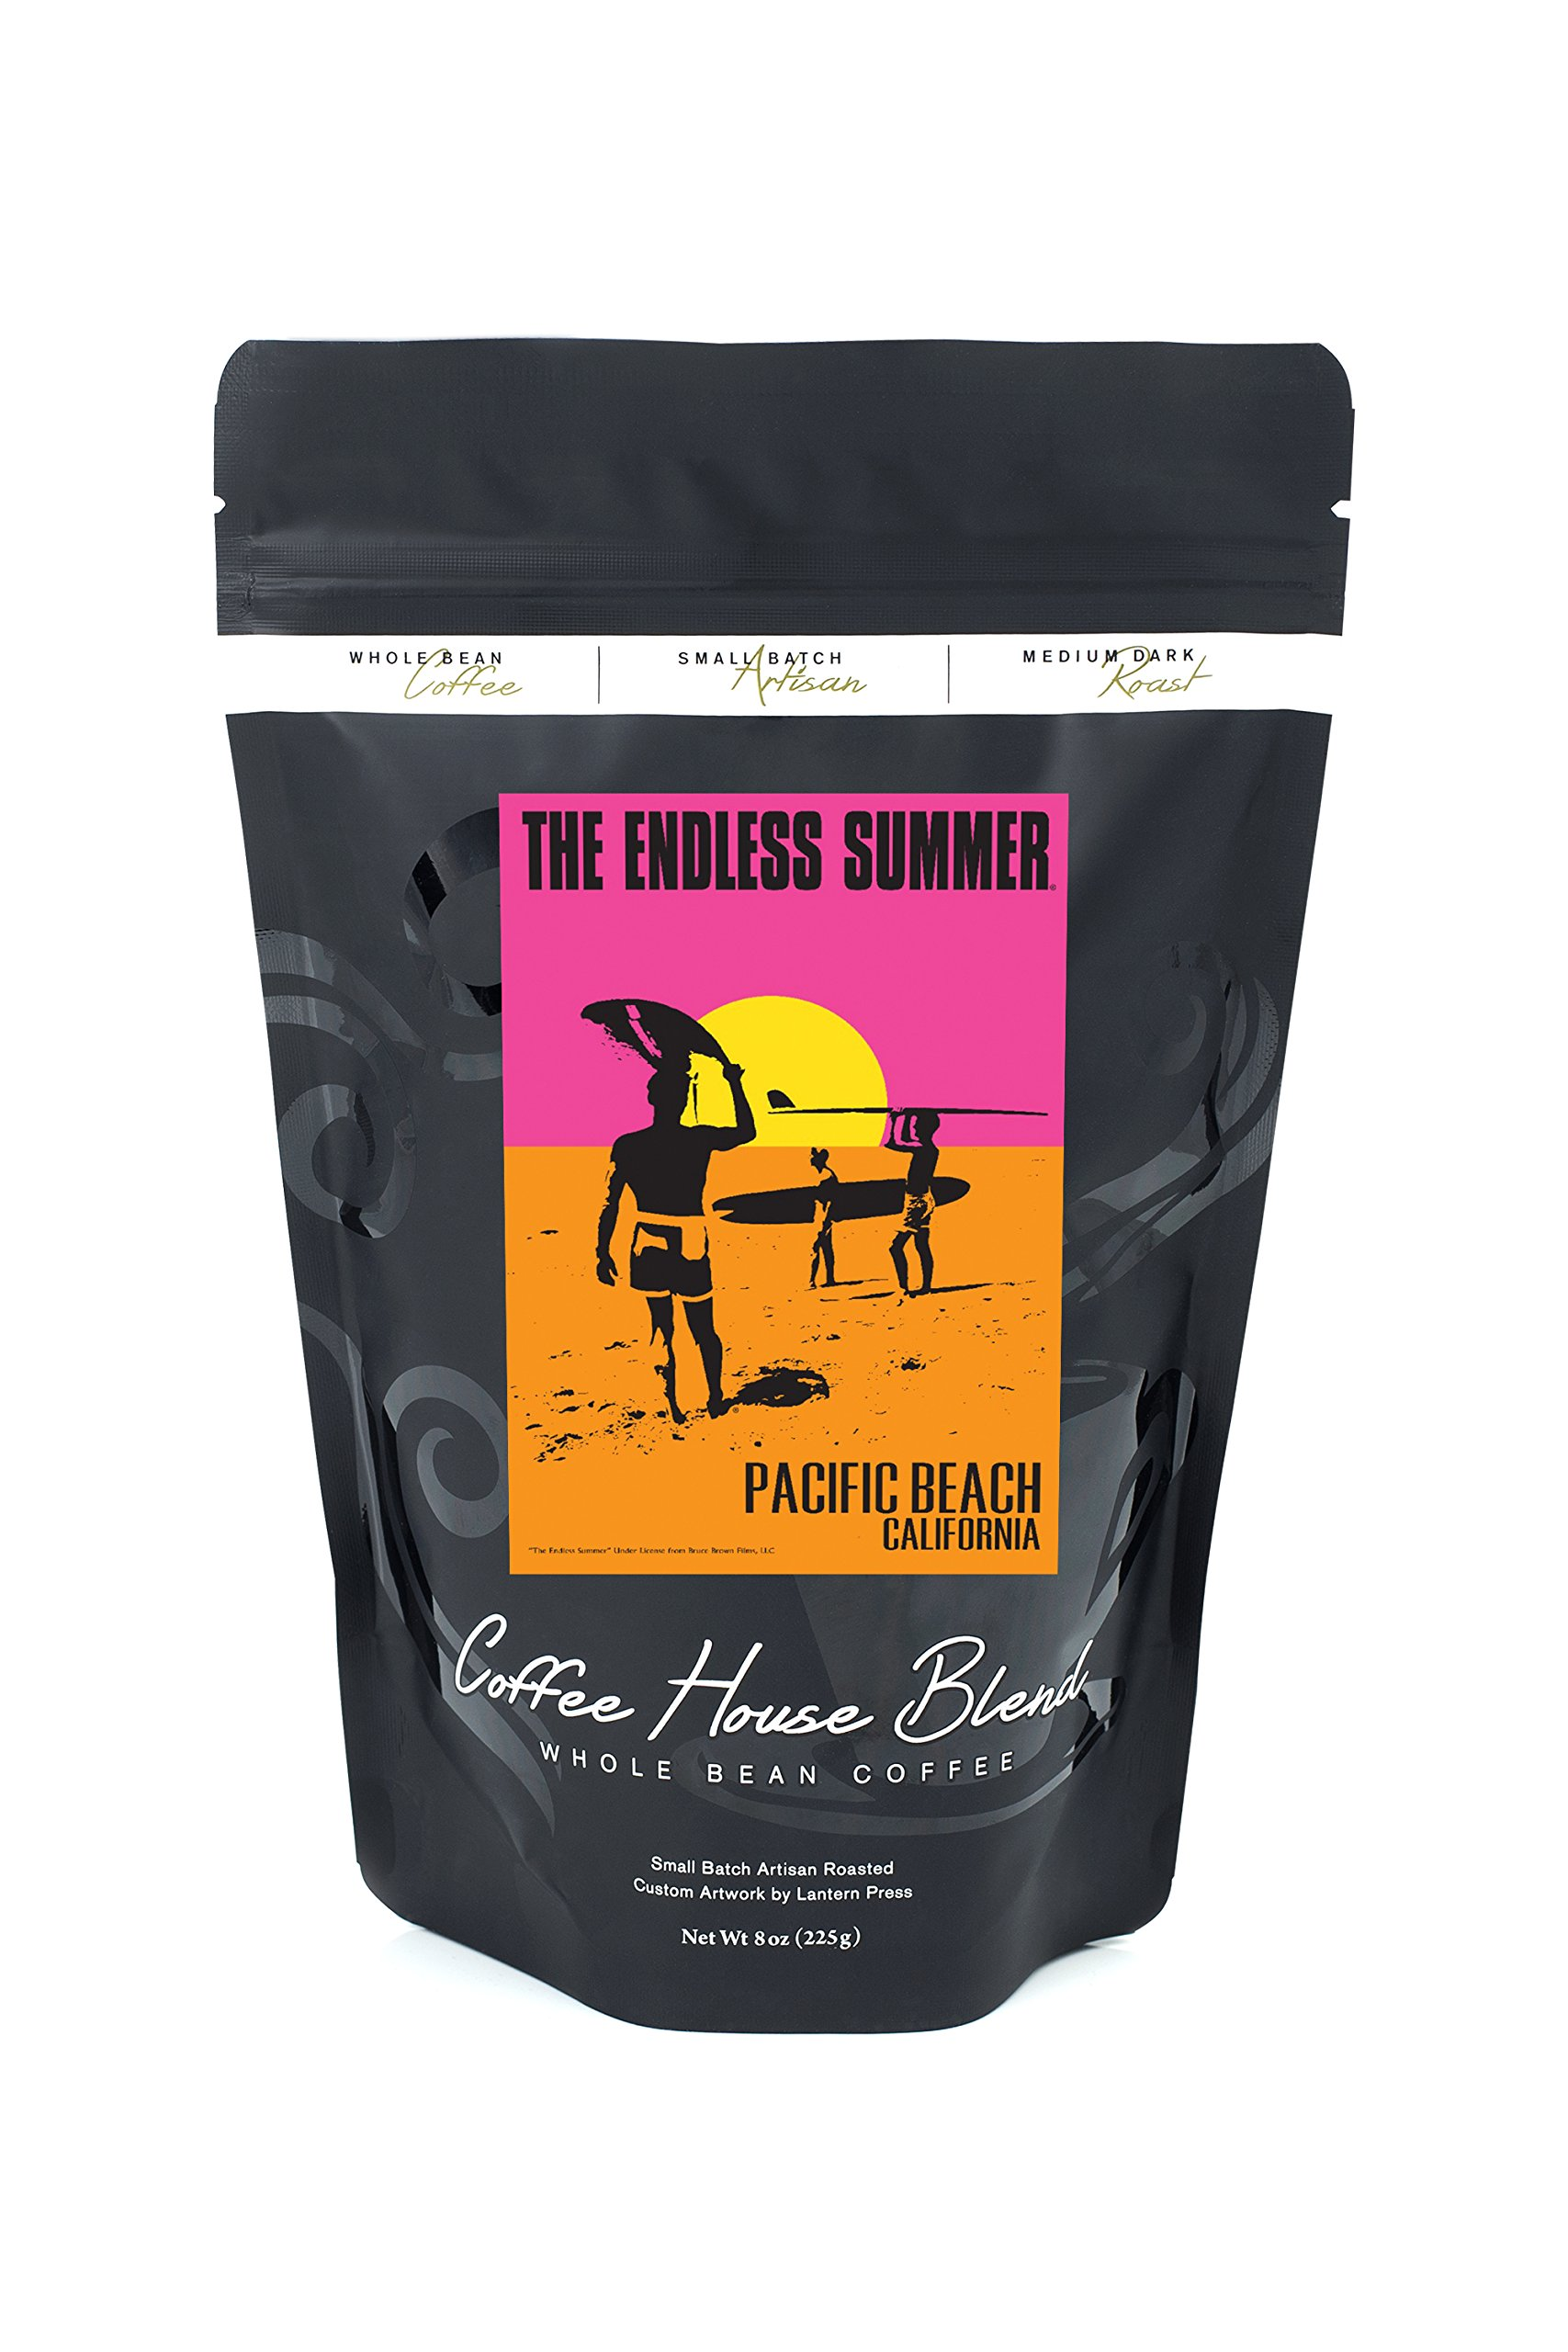 Pacific Beach, California - The Endless Summer - Original Movie Poster (8oz Whole Bean Small Batch Artisan Coffee - Bold & Strong Medium Dark Roast w/ Artwork)